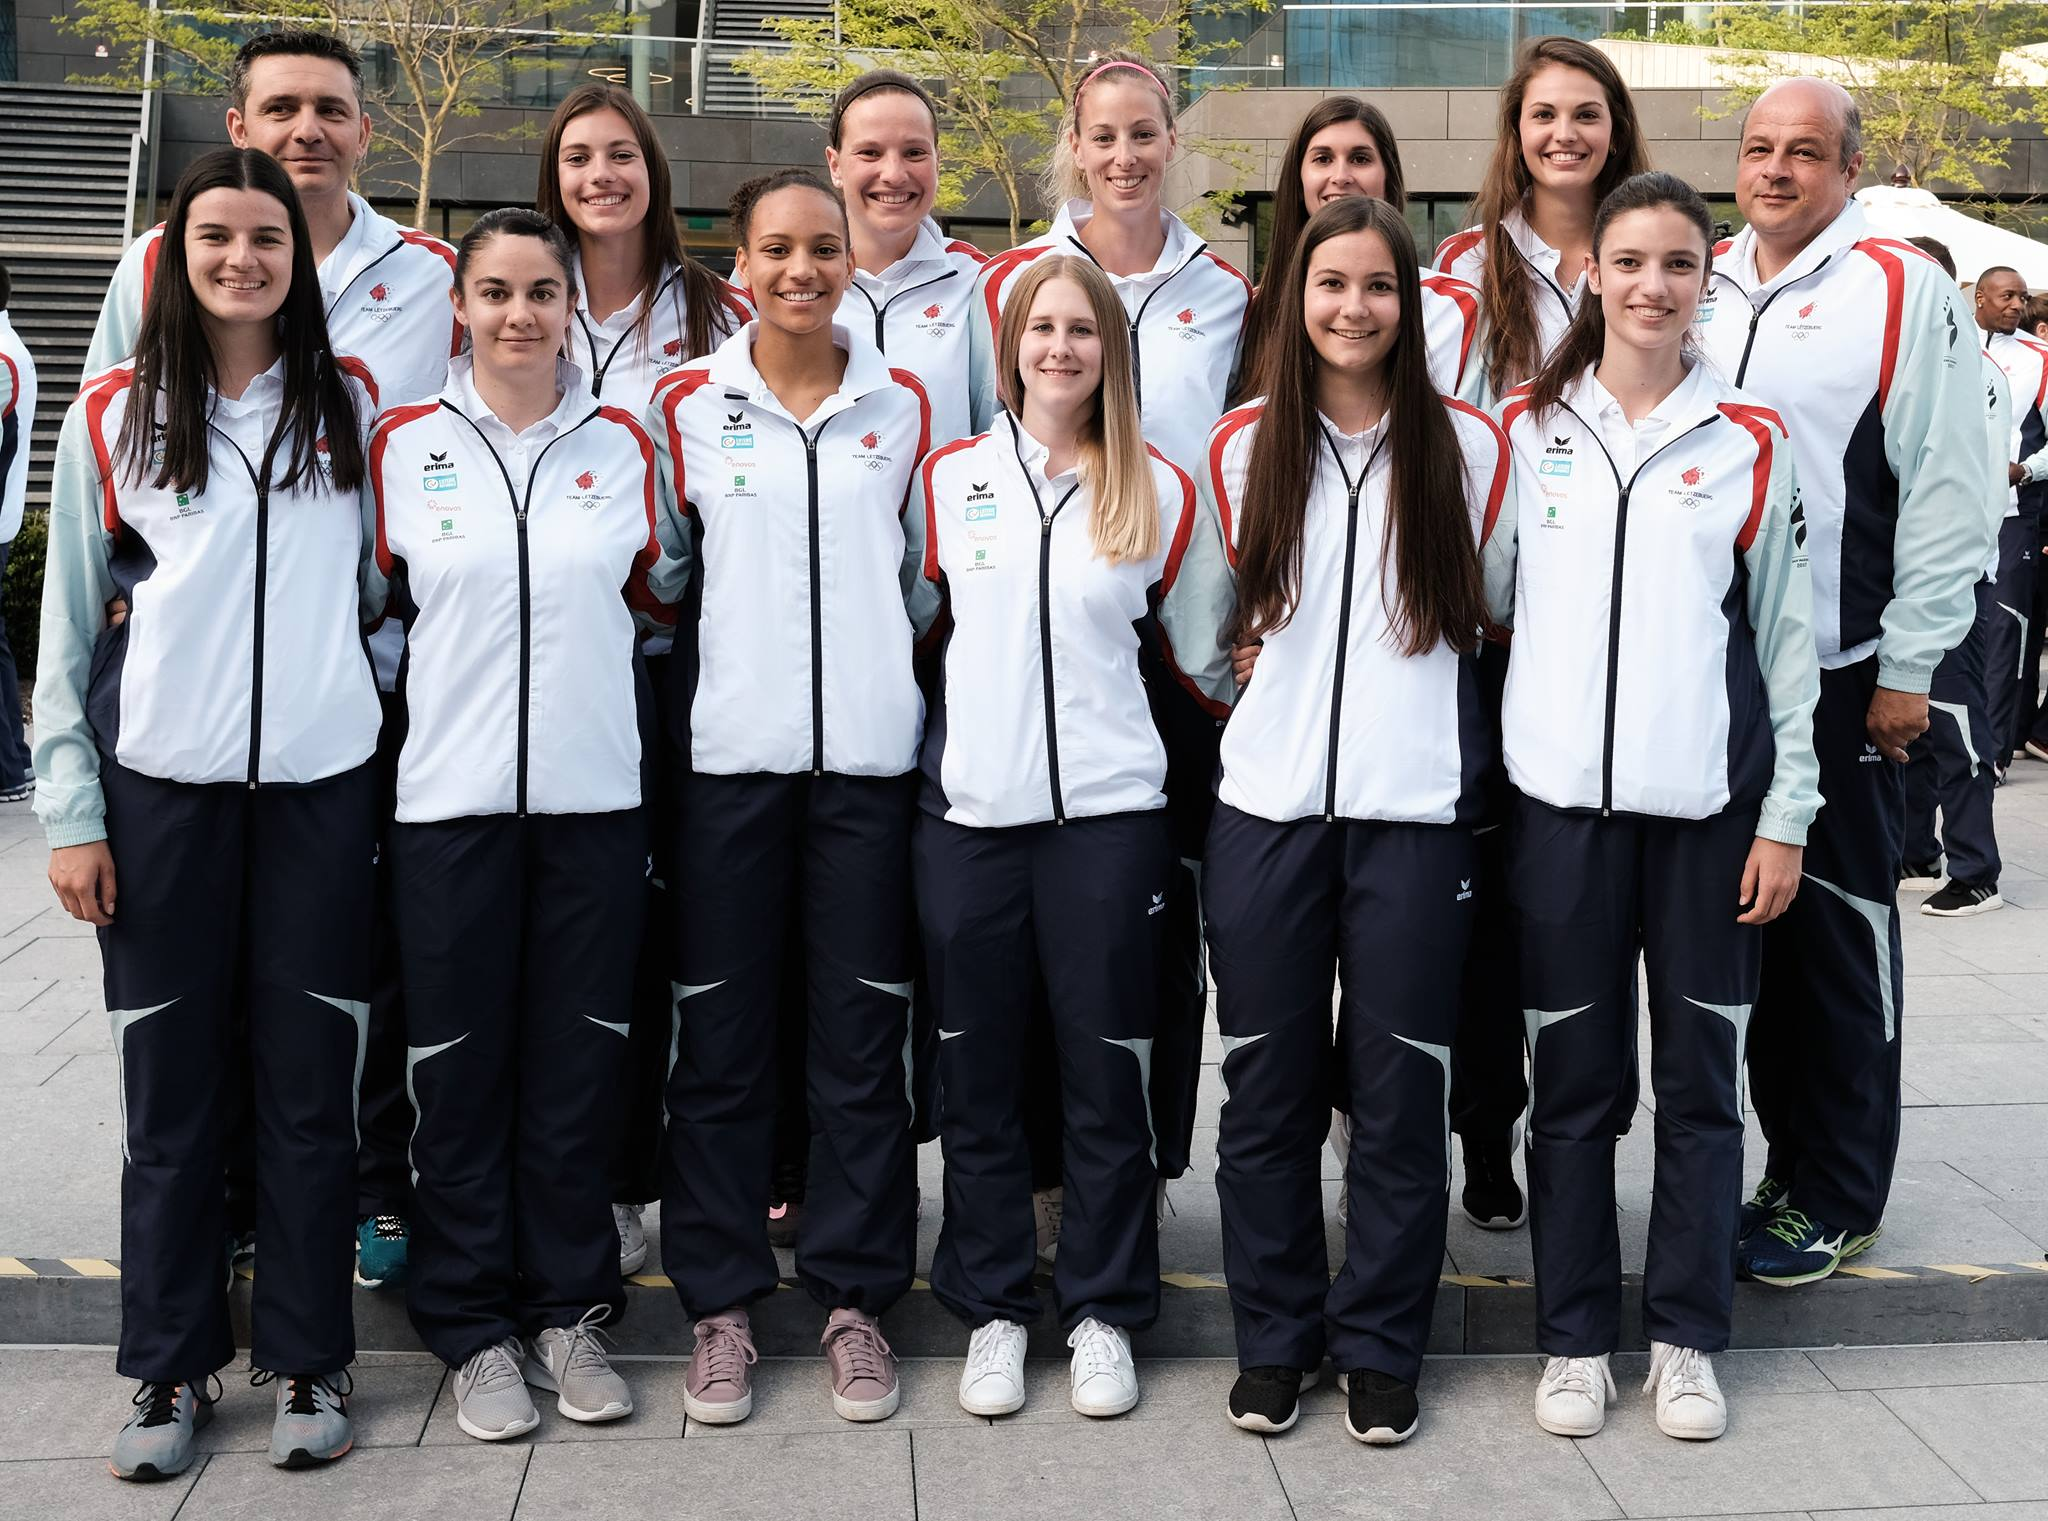 2017 GSSE indoor women